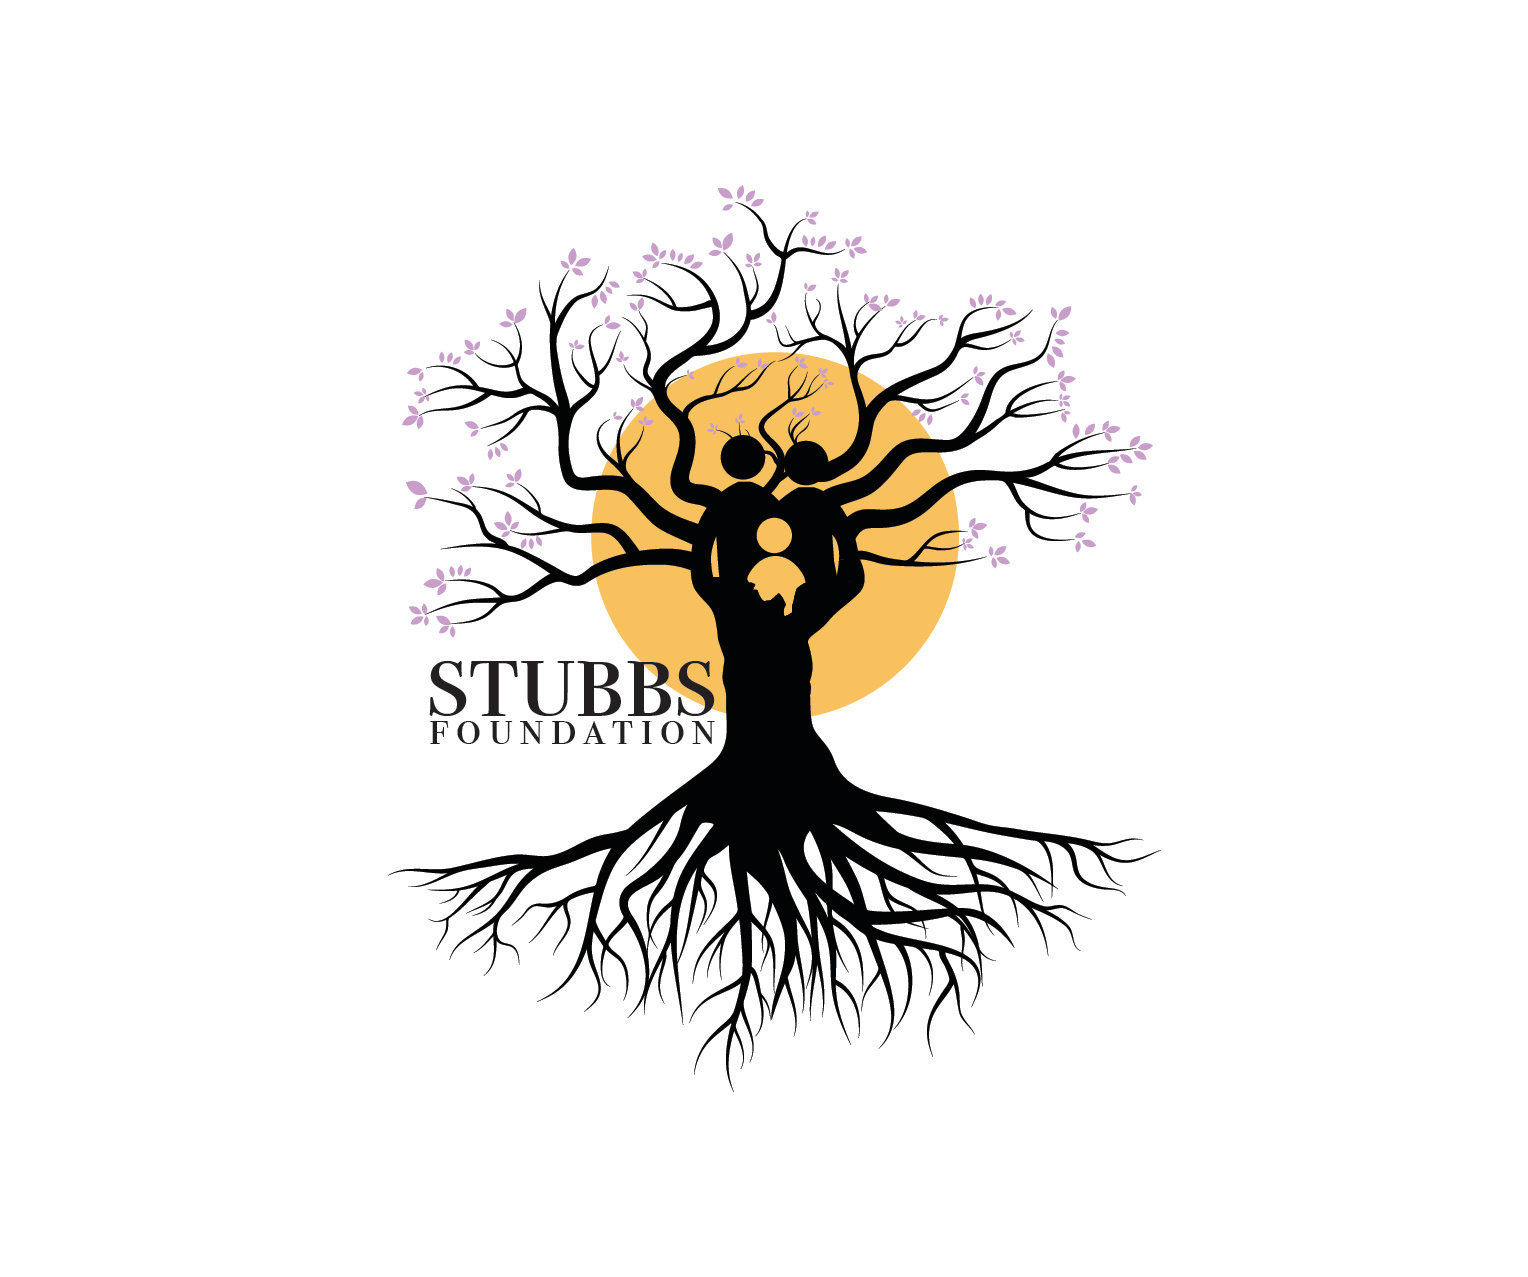 stubbsfoundation-01